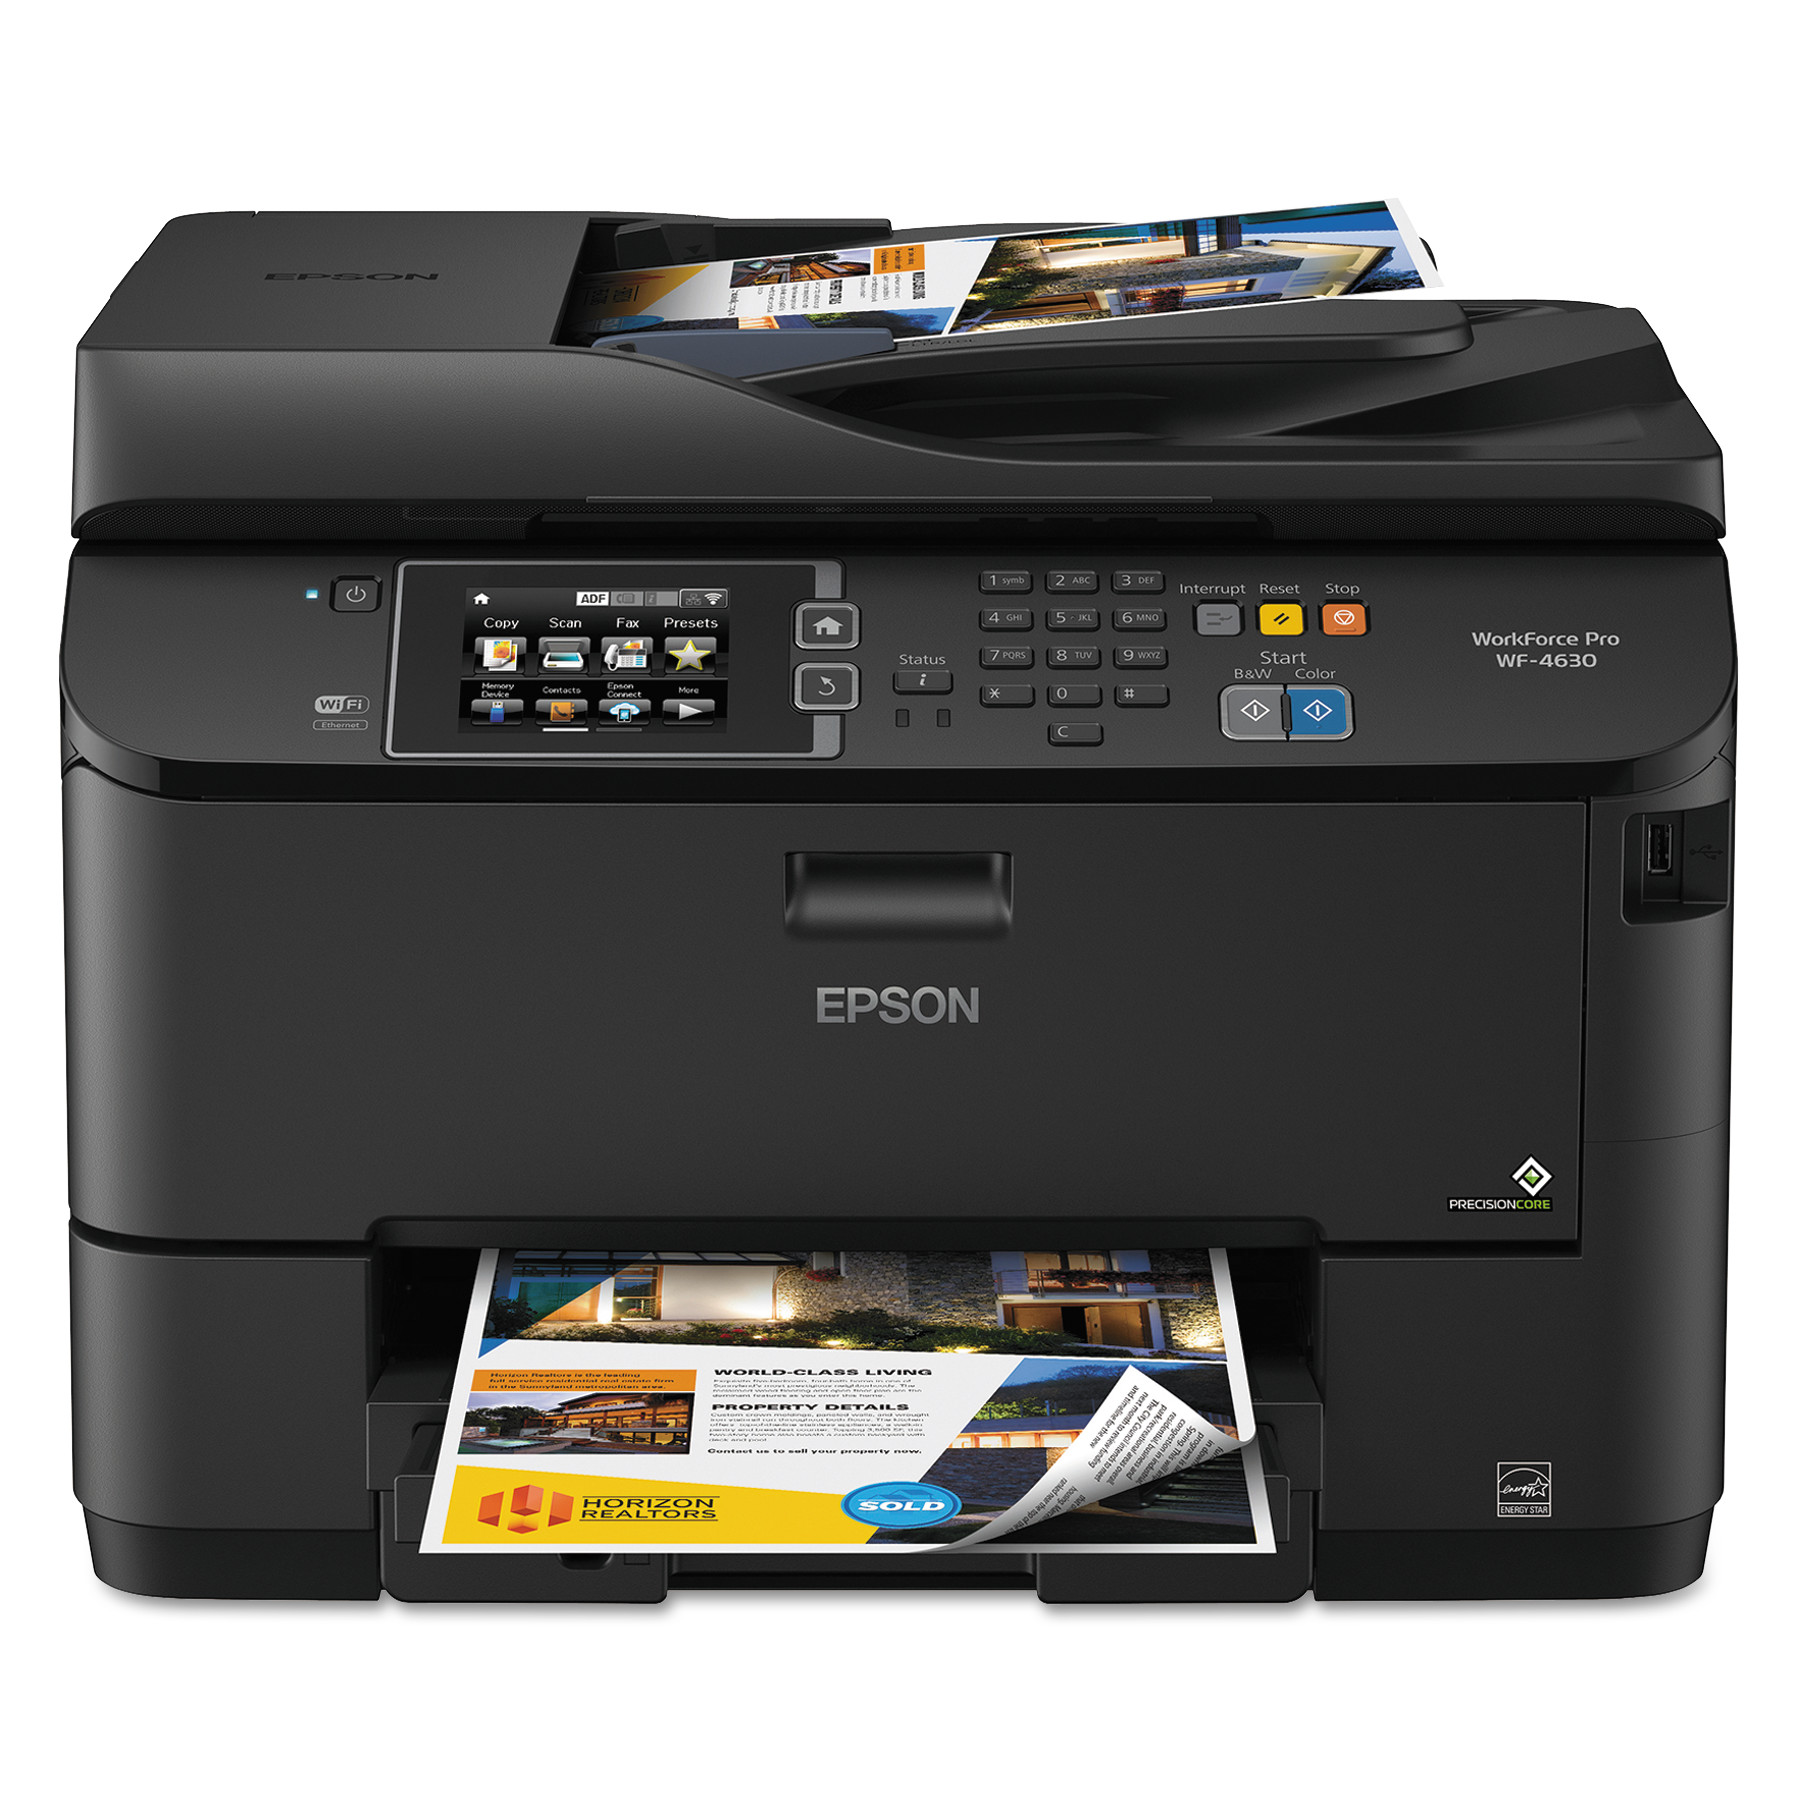 Epson WorkForce Pro WF-4630 multifunction printer (color) by Epson